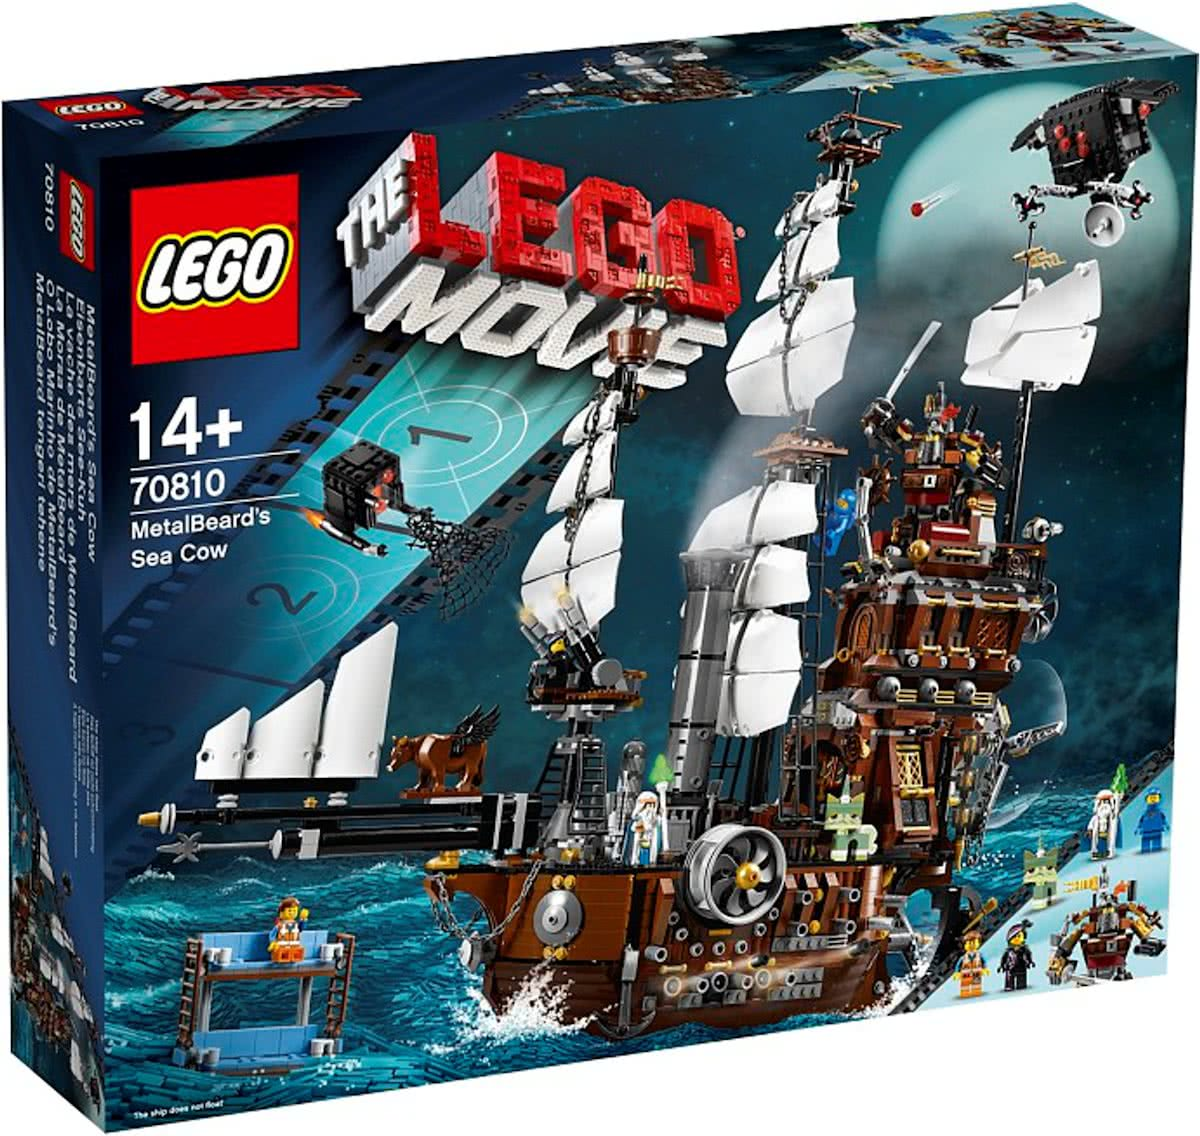 LEGO The Movie Metaalbaards Zeekoe - 70810